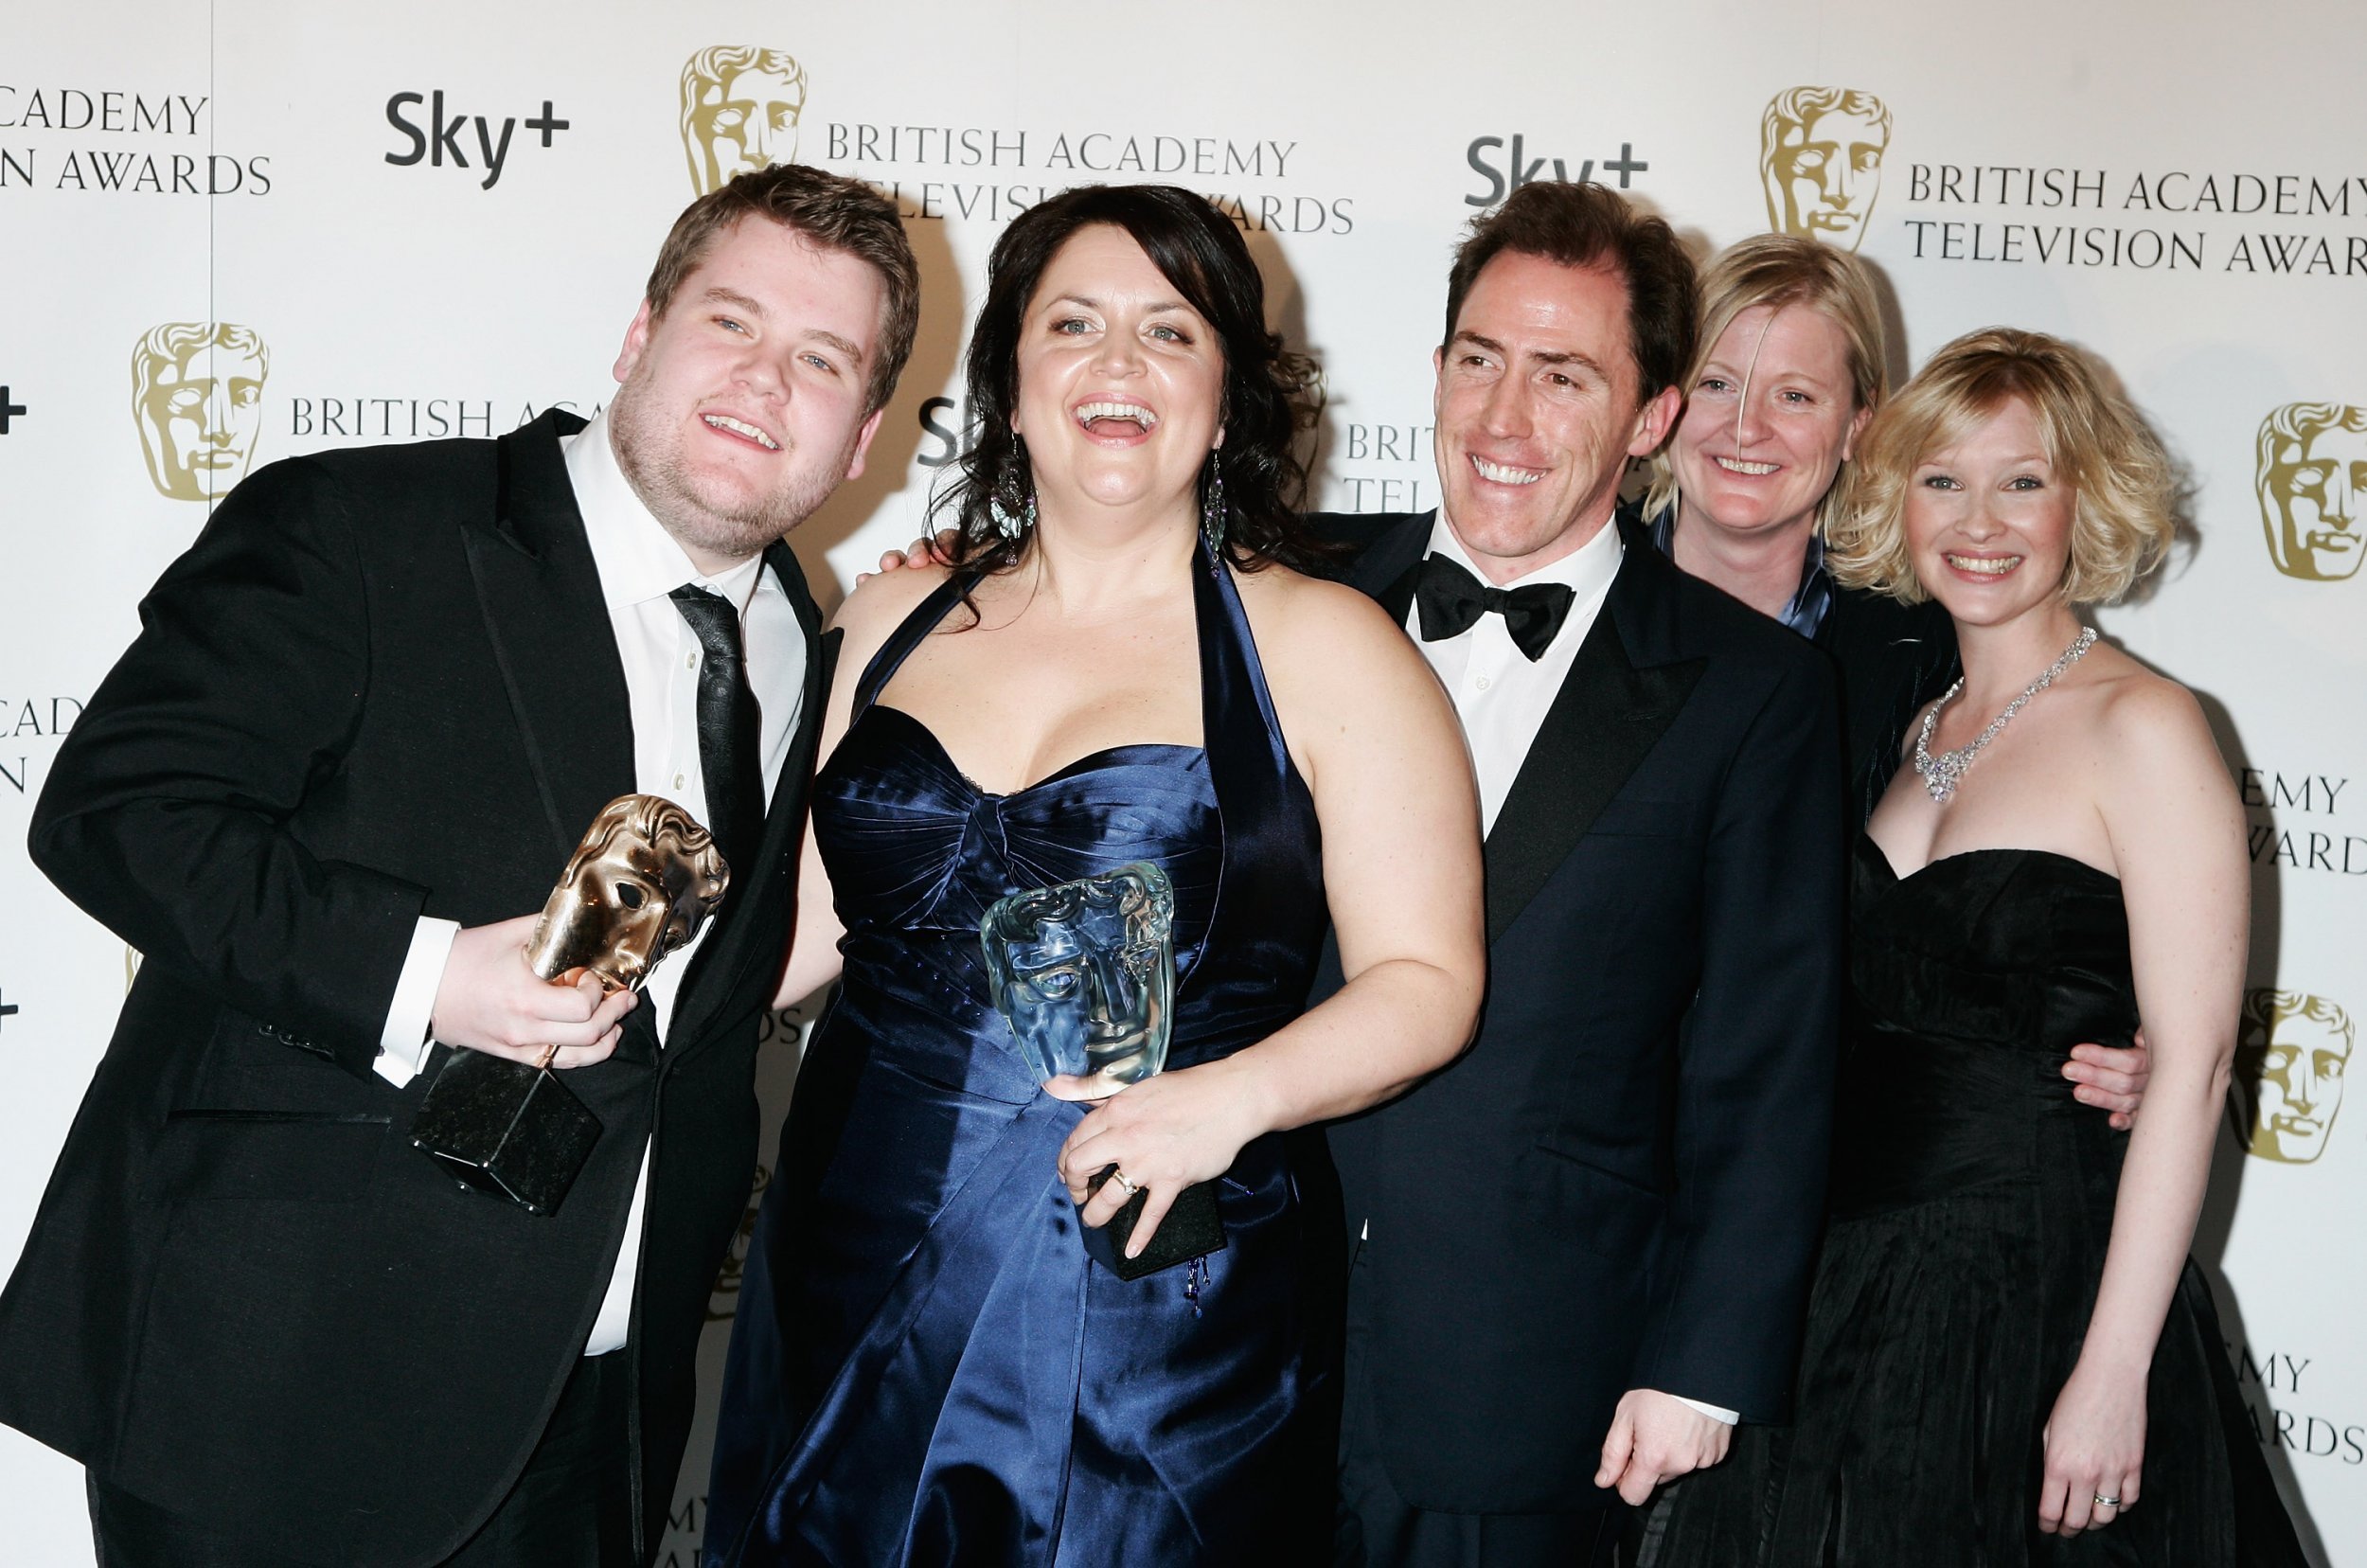 Gavin & Stacey's cast celebrate with a BAFTA.